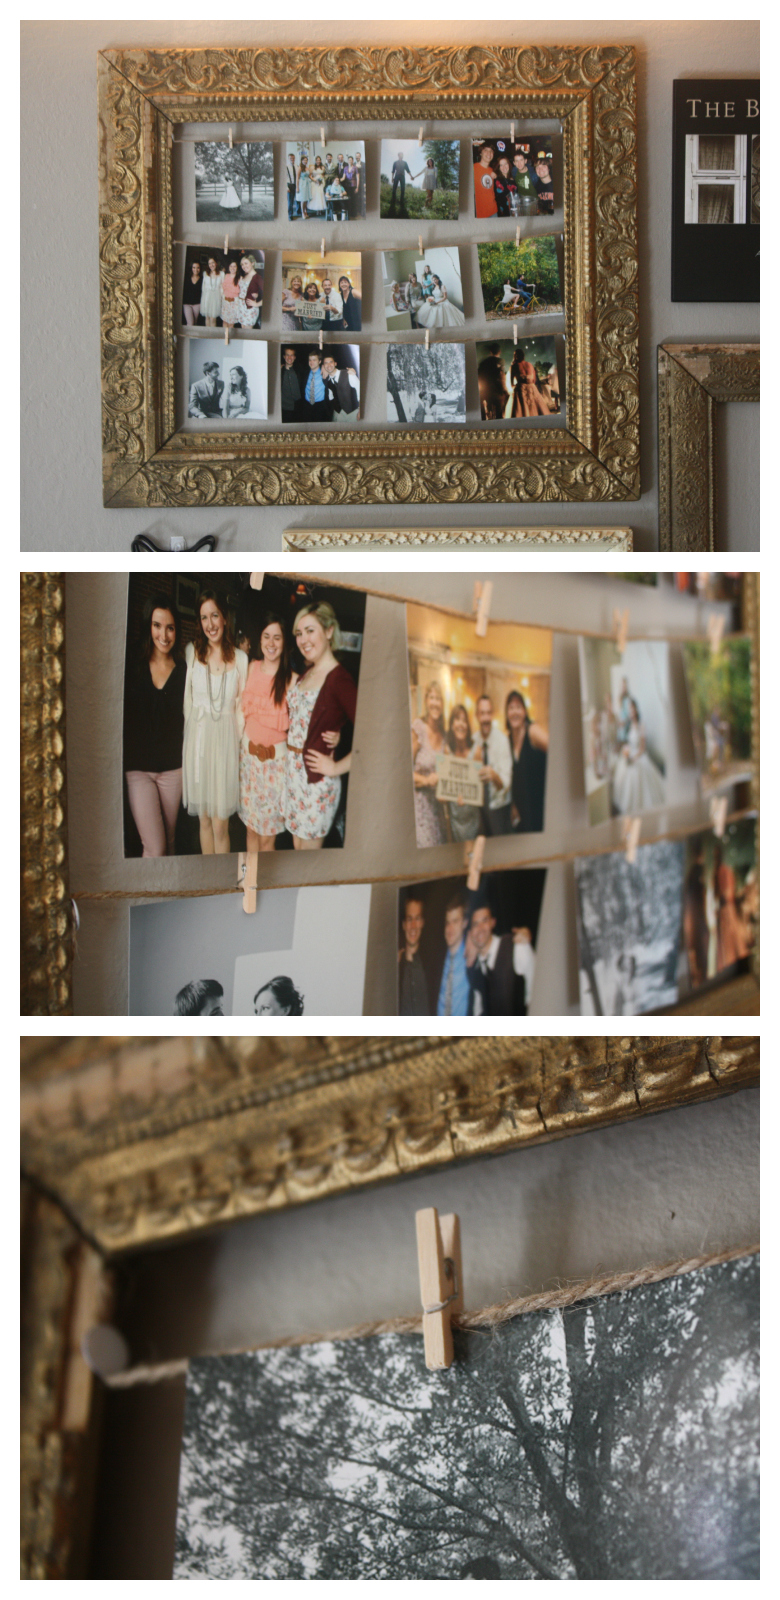 a.b.daisy: PHOTOS ON CLOTHESPINS: FILL AN ANTIQUE FRAME